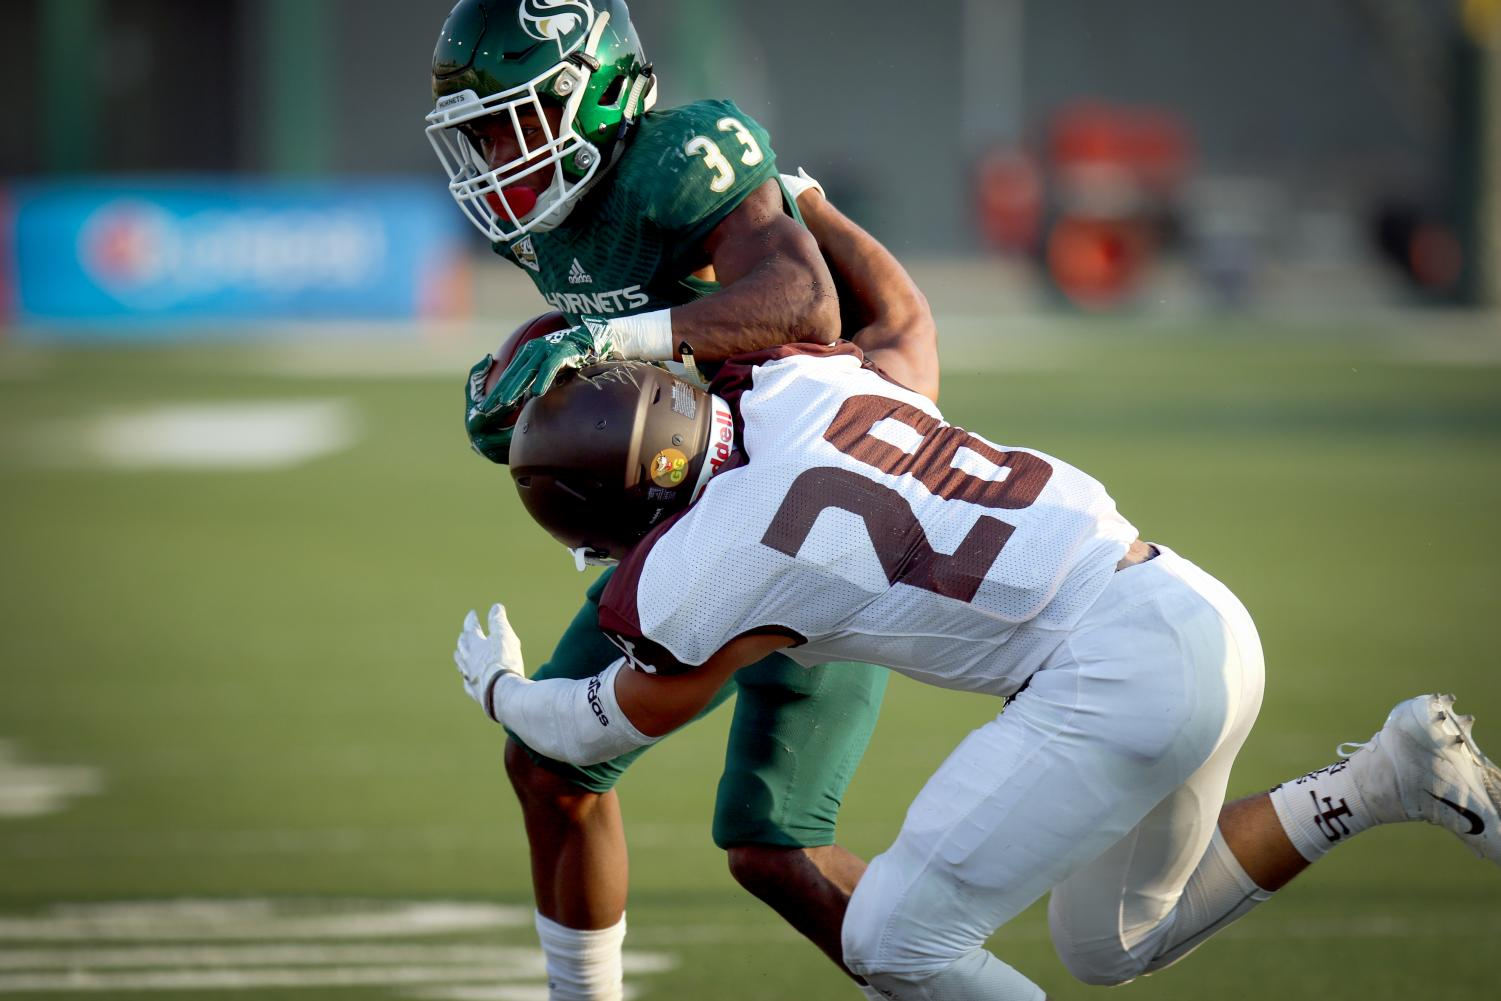 Sacramento State sophomore running back Elijah Dotson is tackled by Rio Strama of University of St. Francis (IL) during the Hornets' first home game of the season on Sept. 1, 2018.